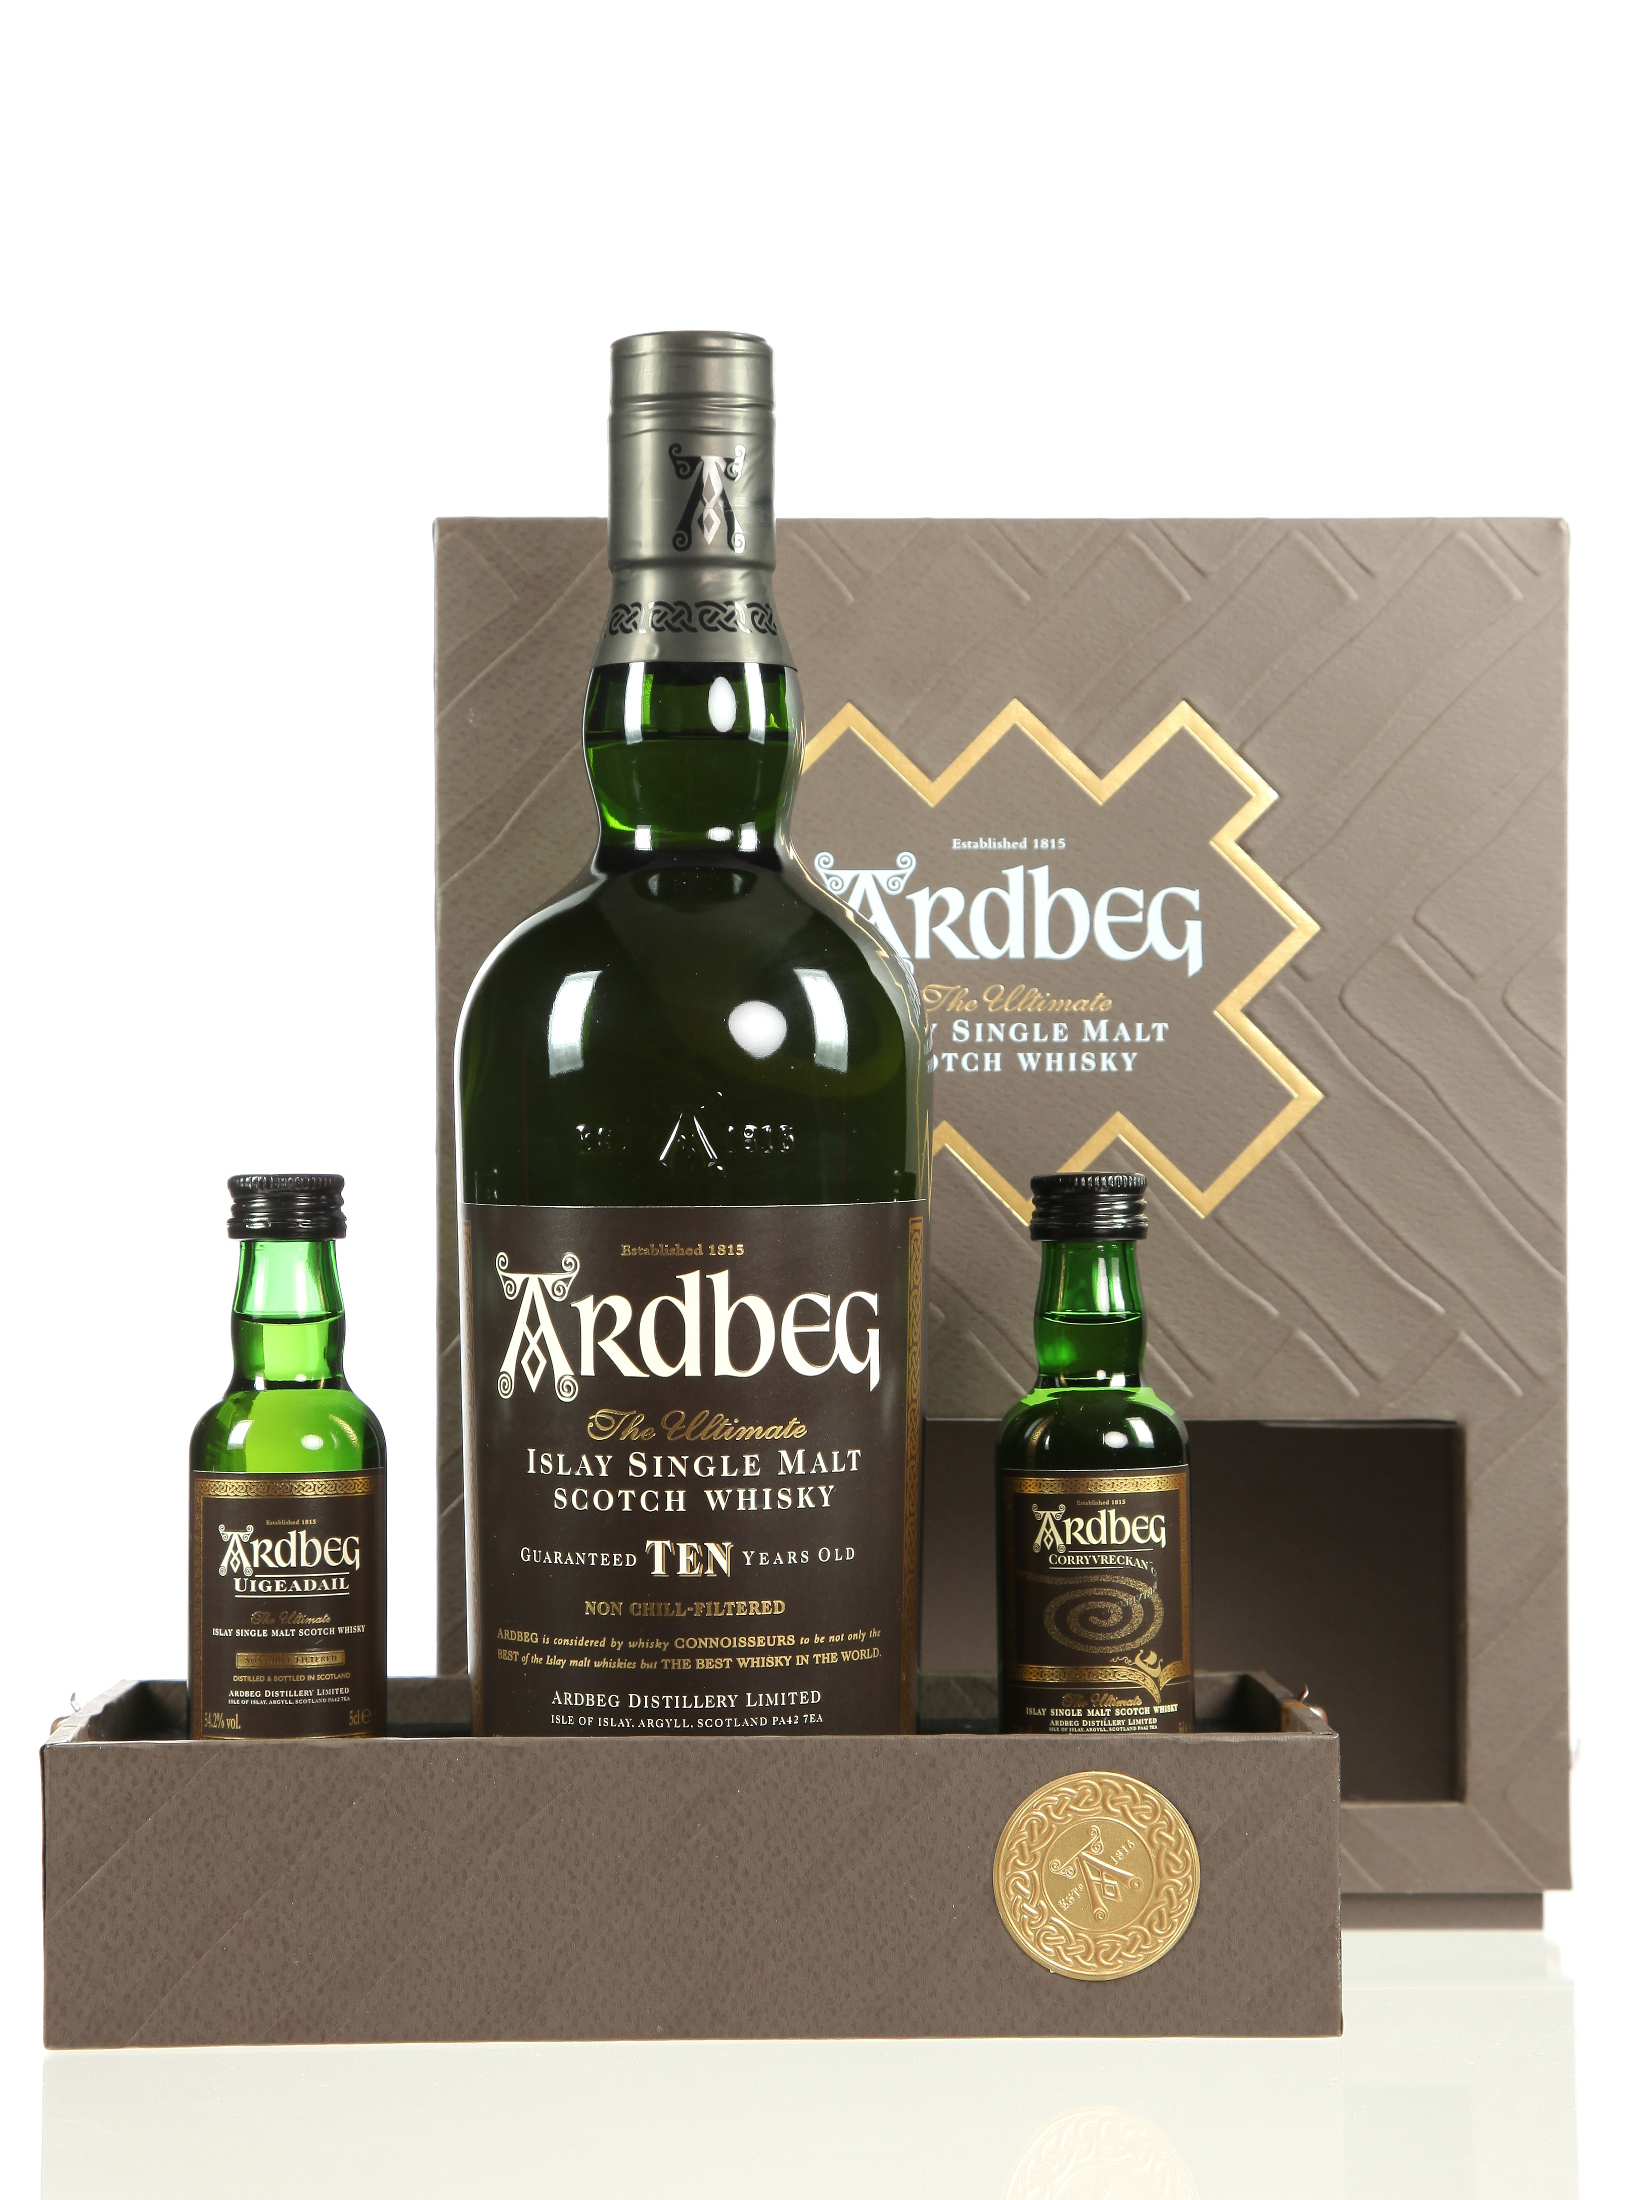 Ardbeg Live Event Set, klein